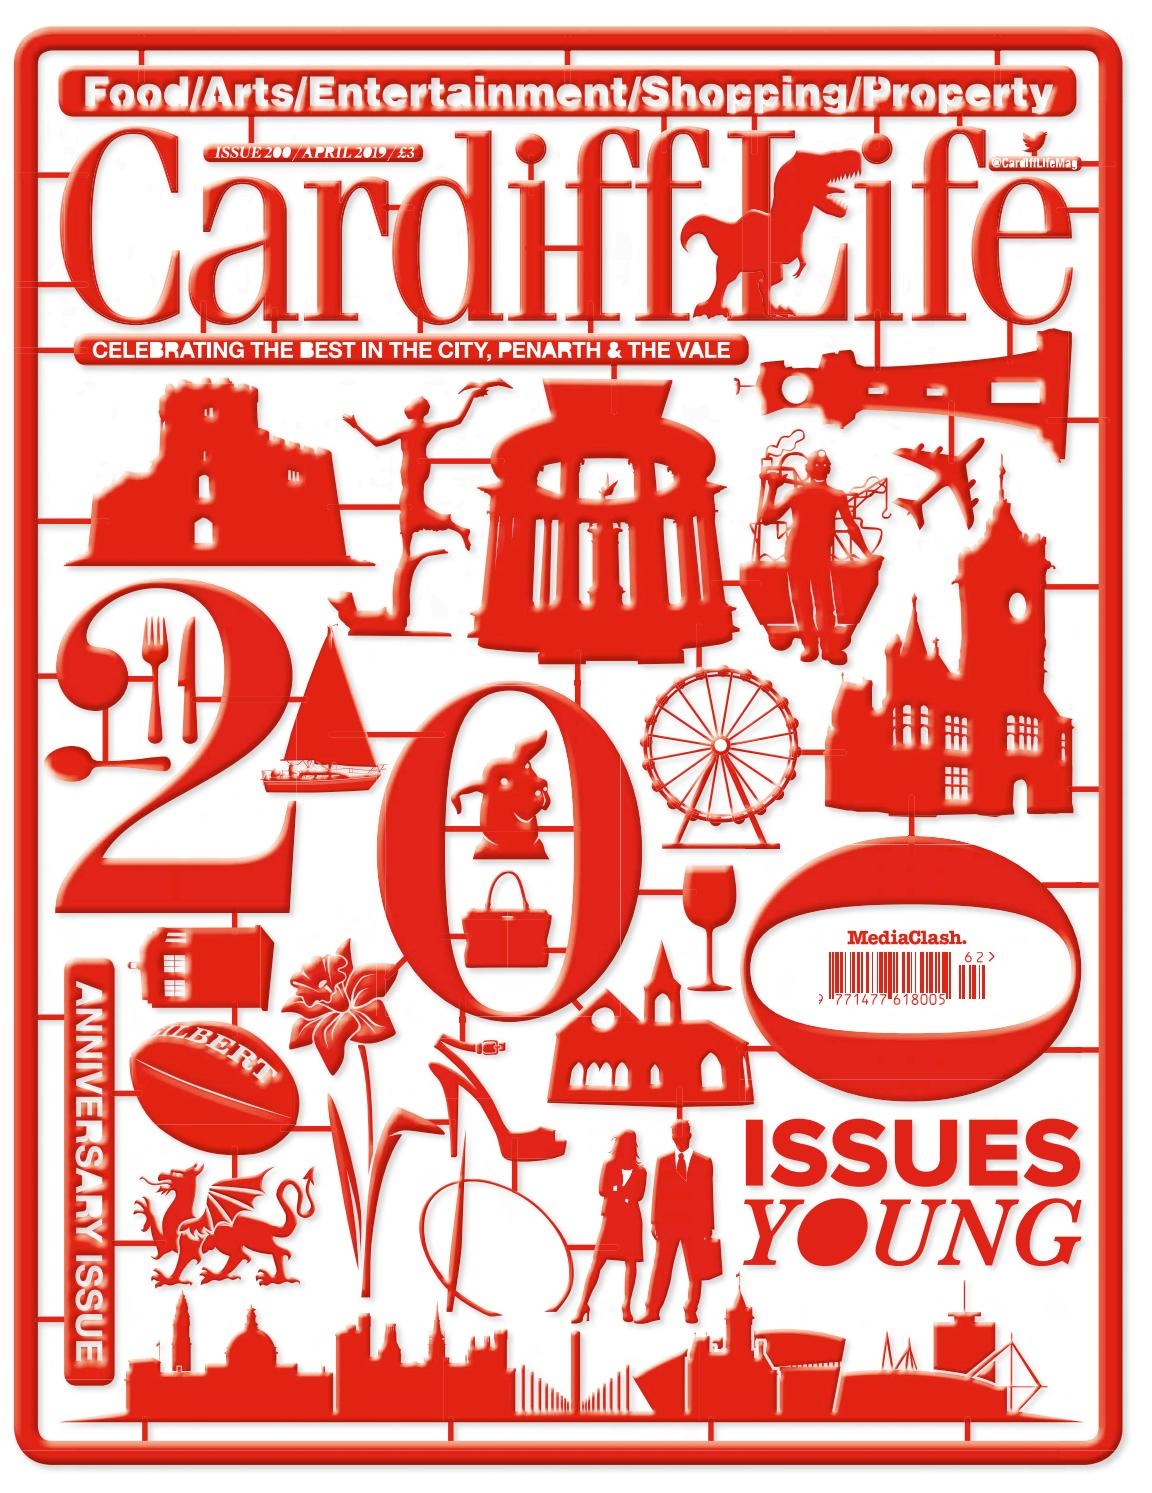 Cardiff Life - Issue 200 by MediaClash - issuu